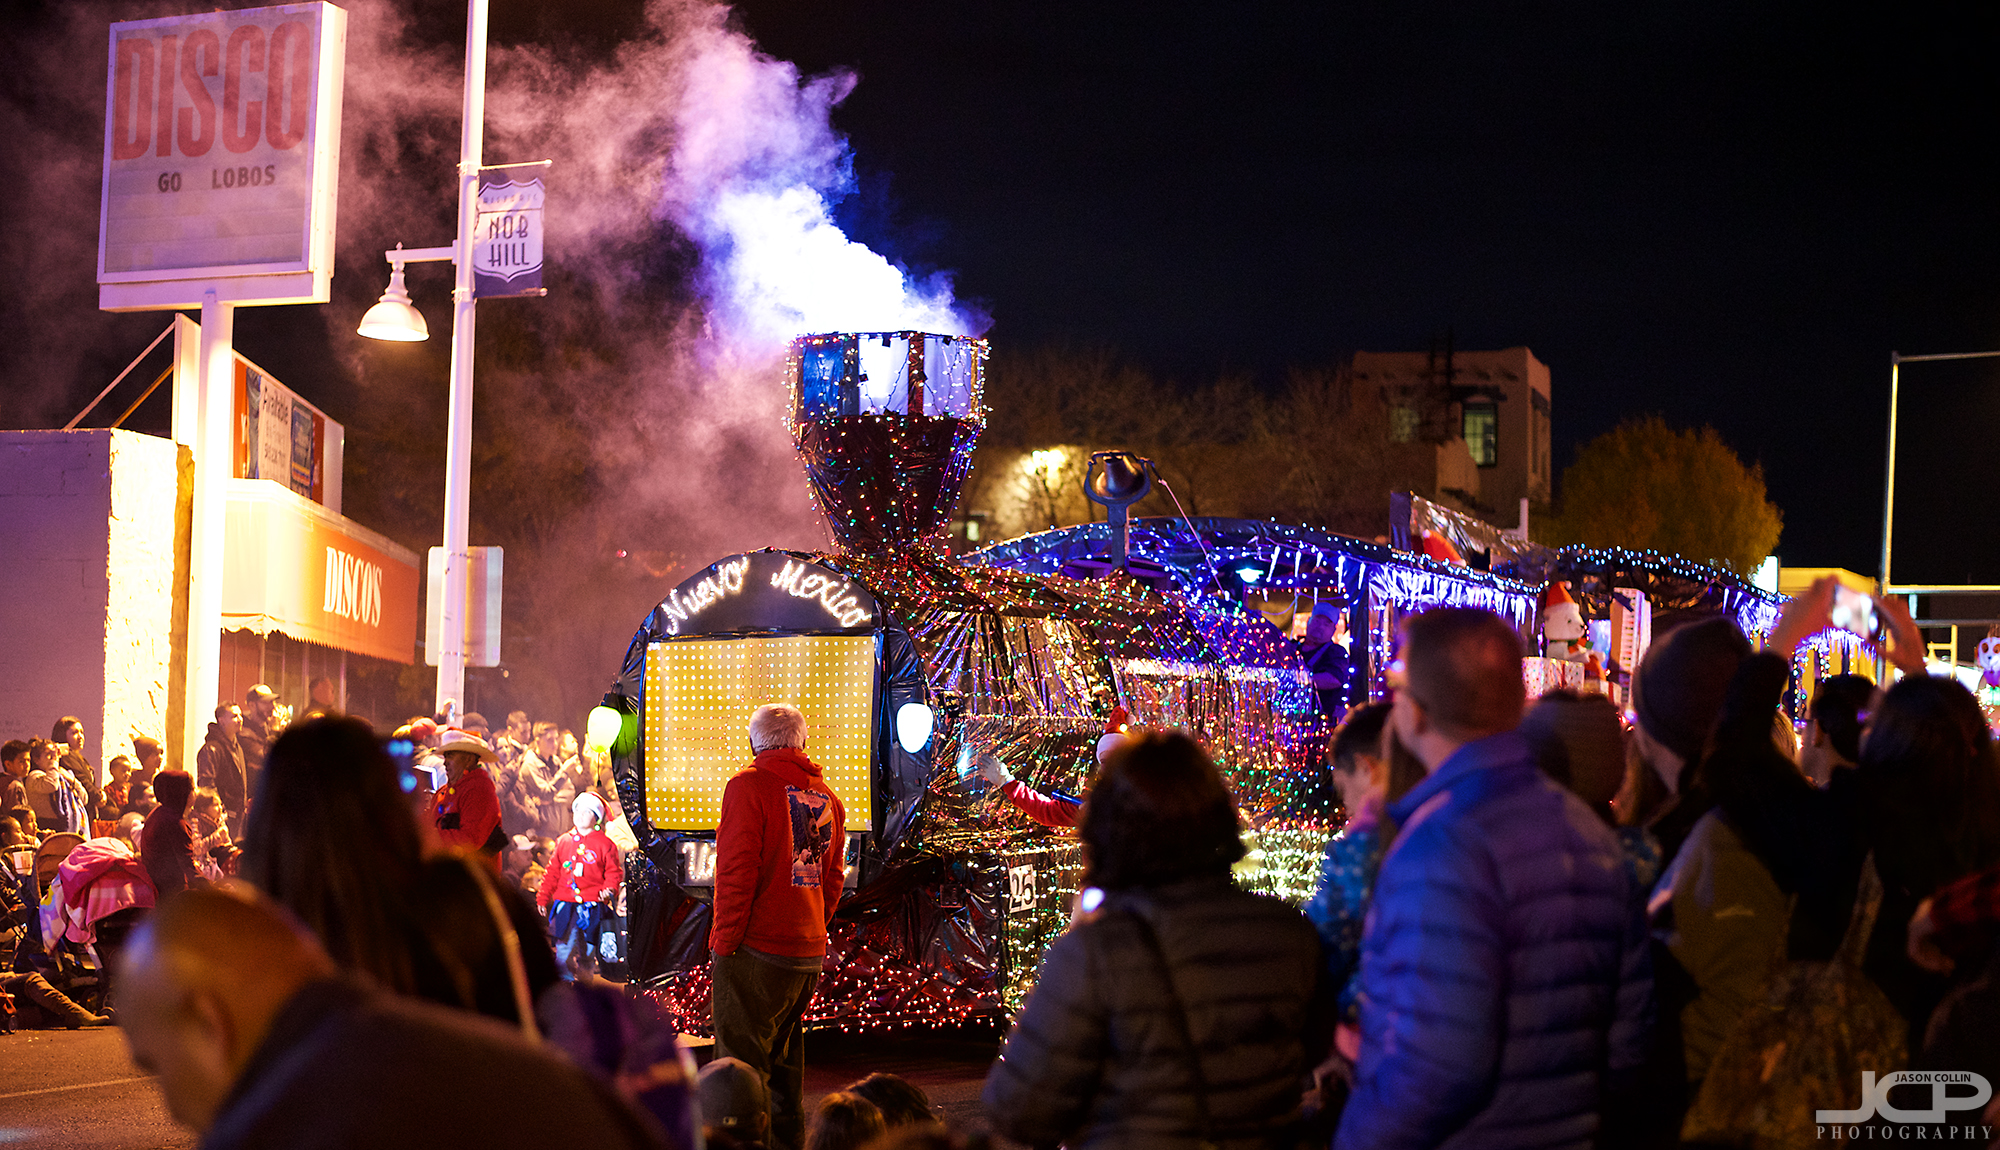 Watch out for the Twinkle Light Parade train!  - Nikon D750 with Nikkor 50mm f/1.8G @ f/1.8 1/60th ISO 4000